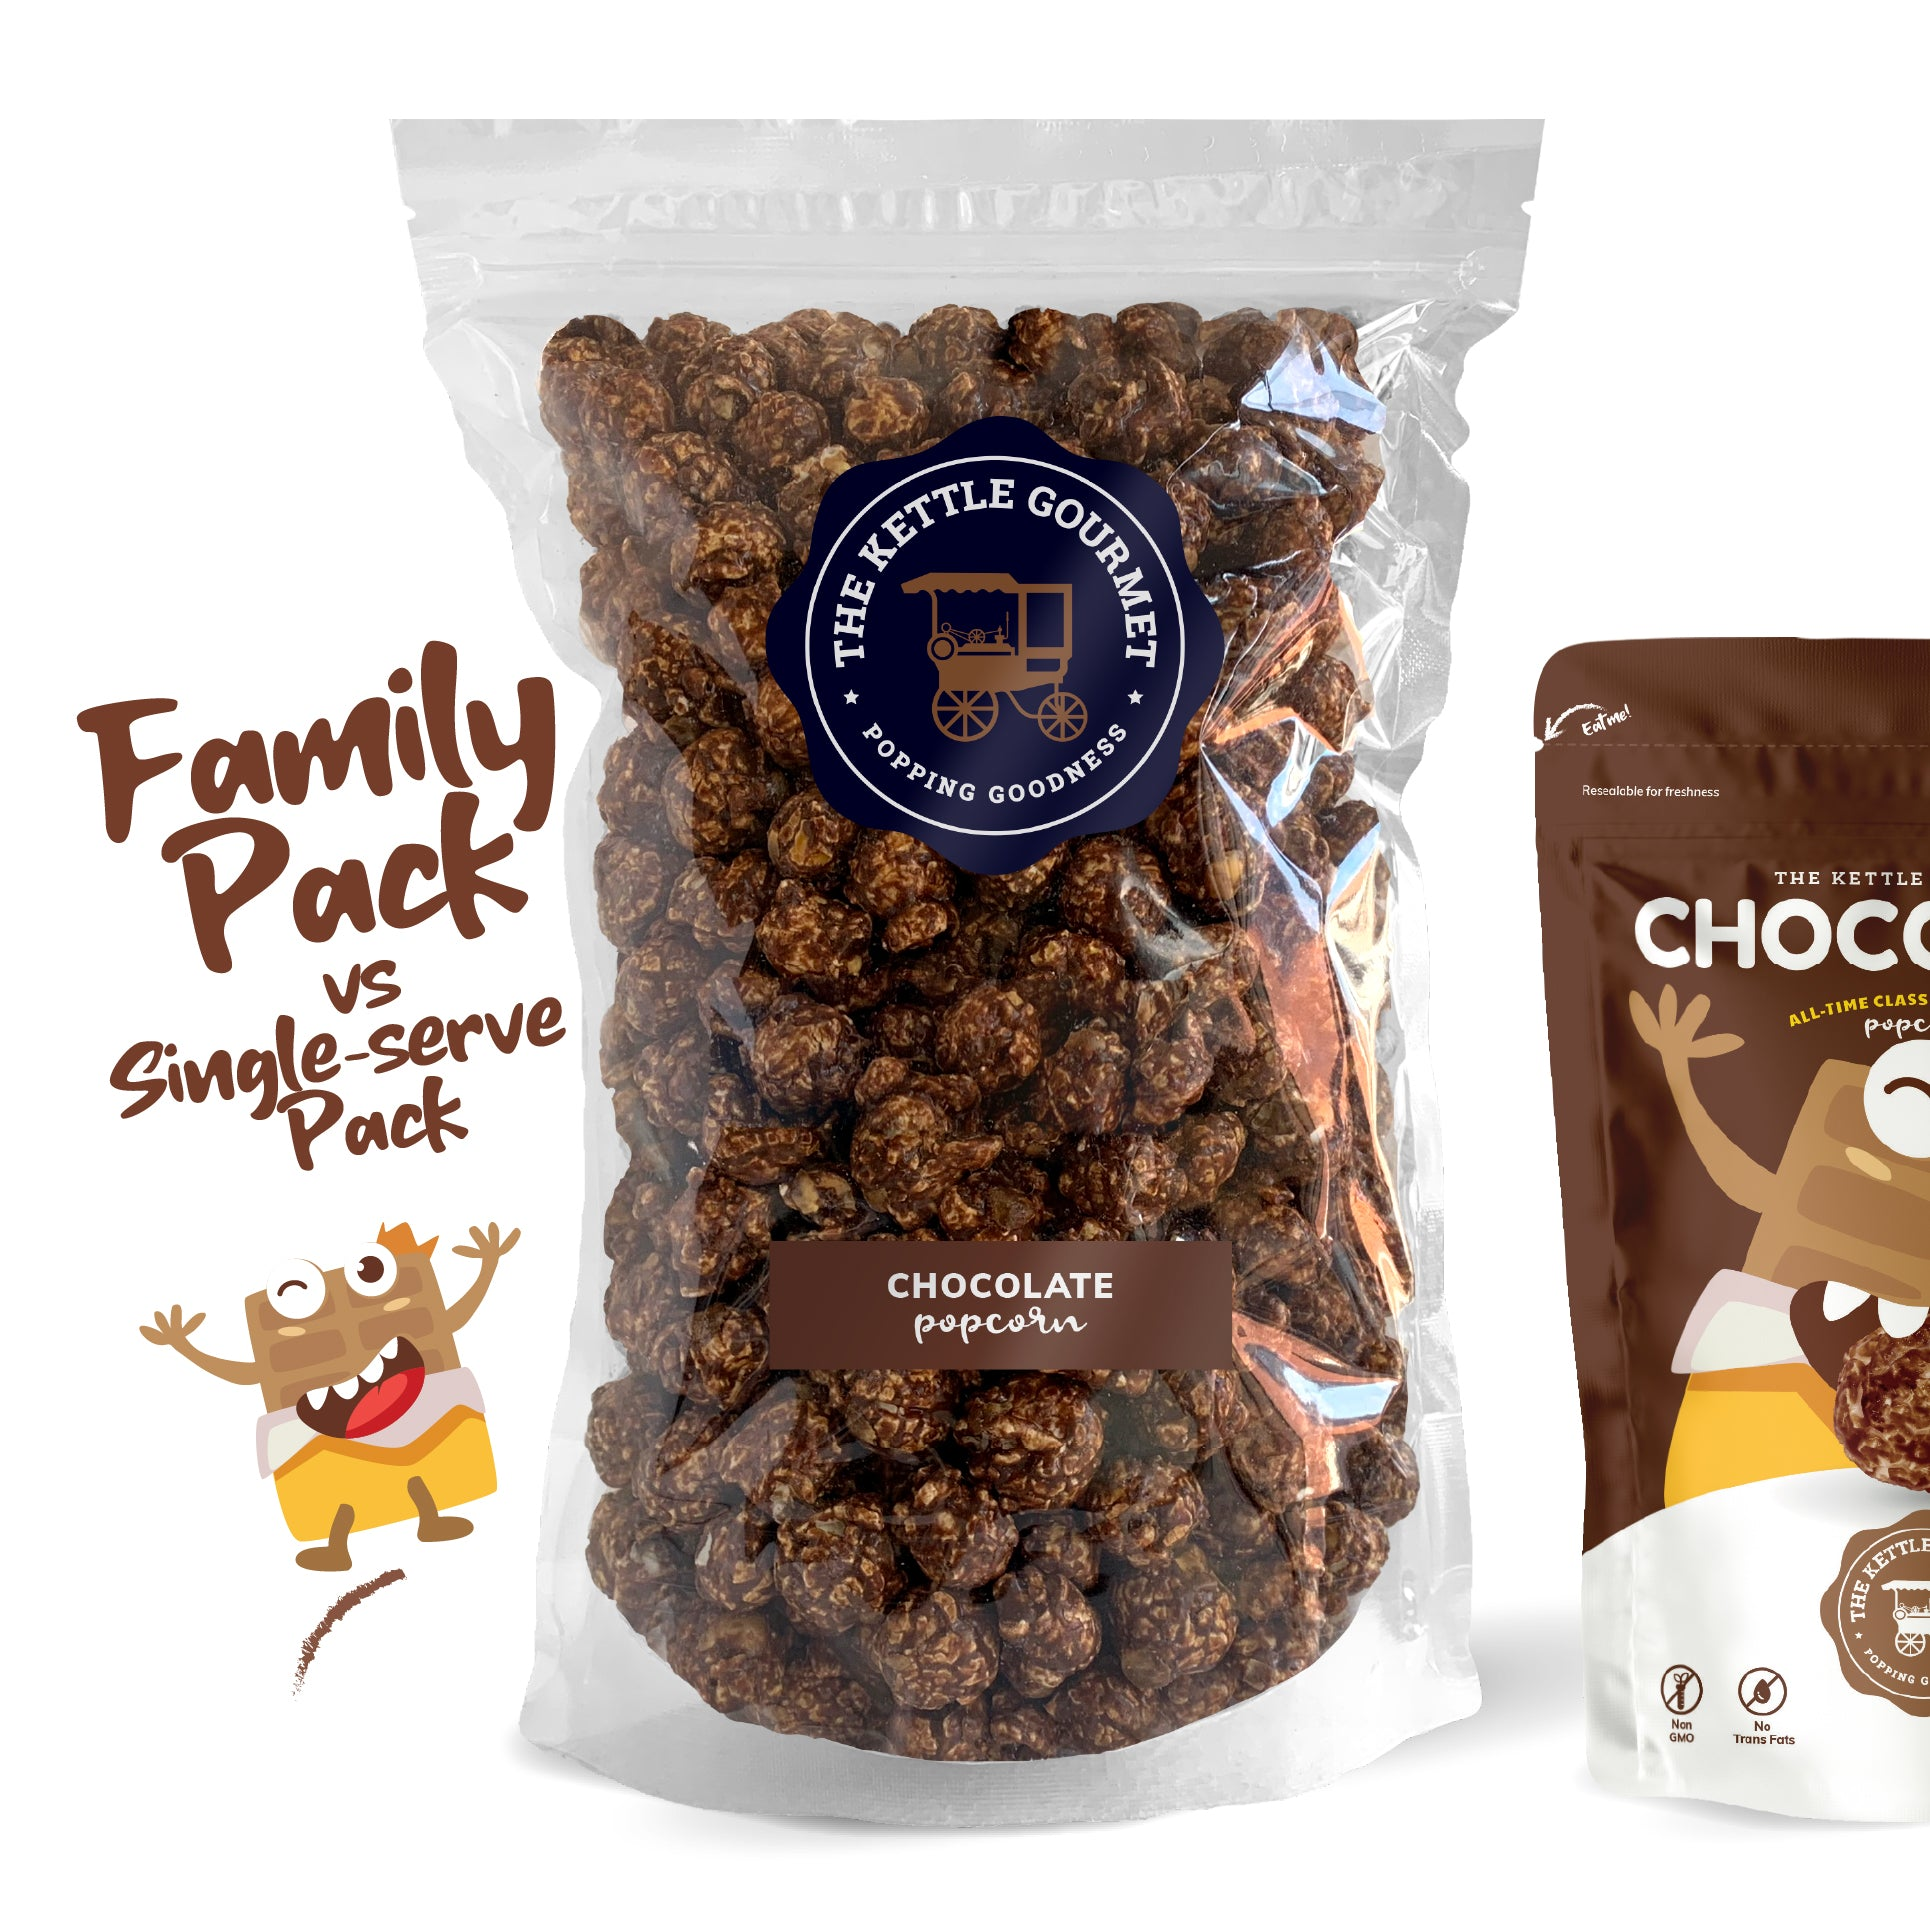 TKG Chocolate Flavoured Popcorn (Family Pack vs Single-serve)